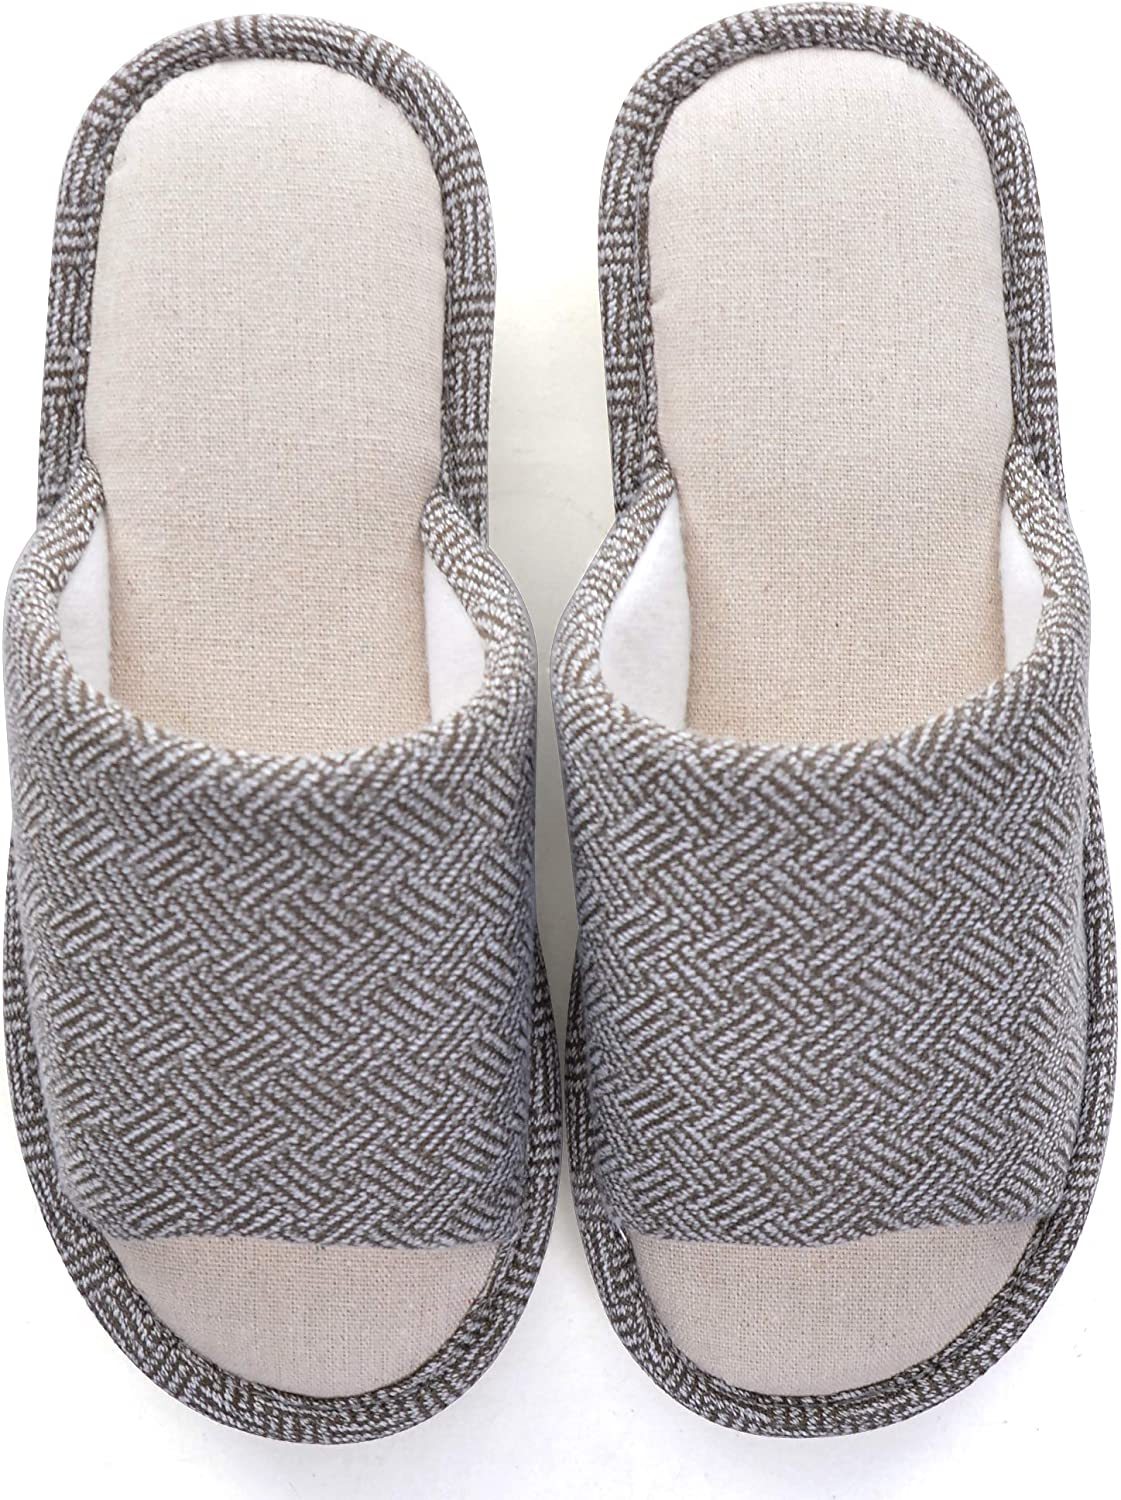 Memorygou Cozy Womens Mens Home Slippers Ind Memory Surprise price Foam Casual 40% OFF Cheap Sale